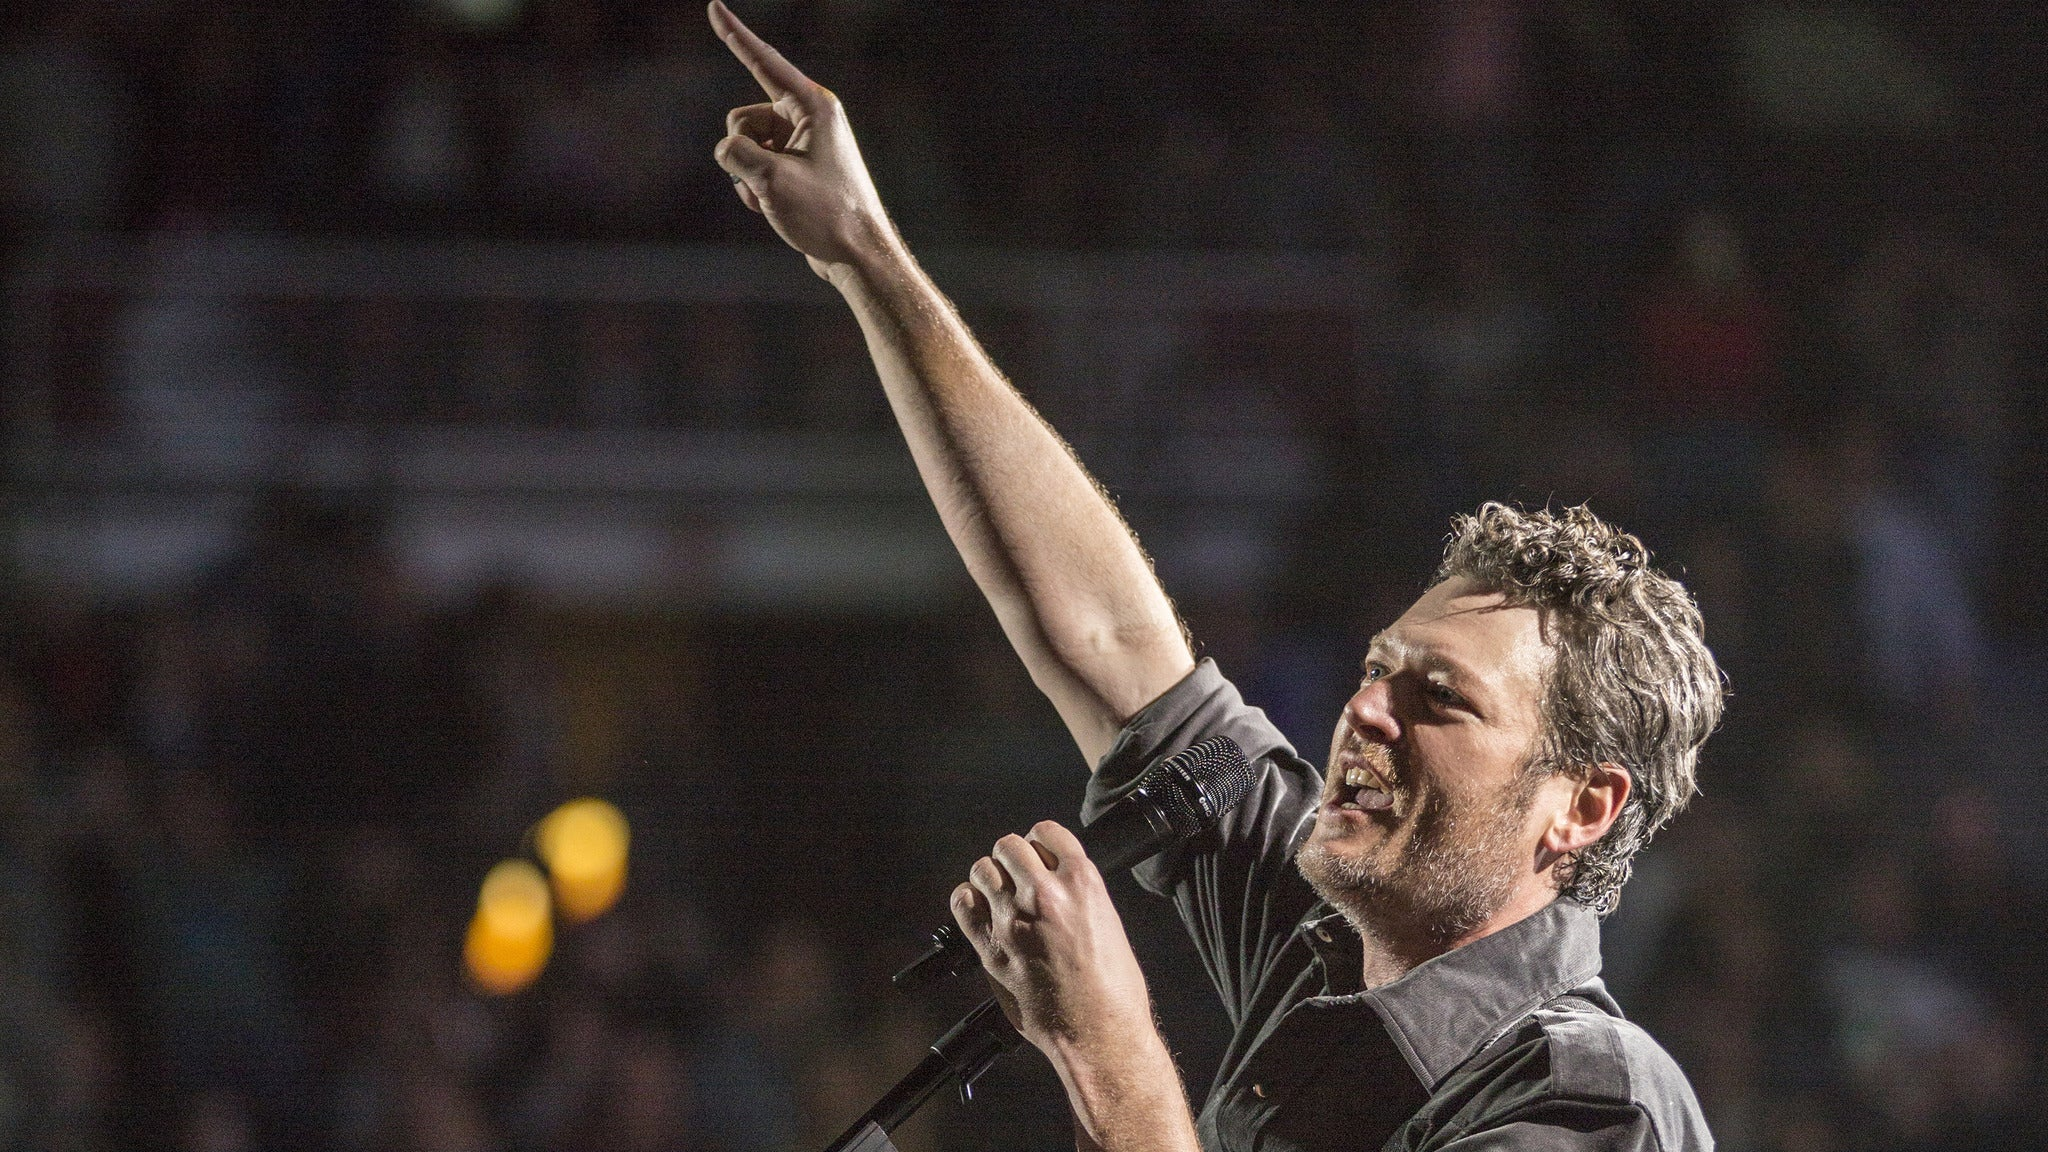 Blake Shelton at Delaware State Fair